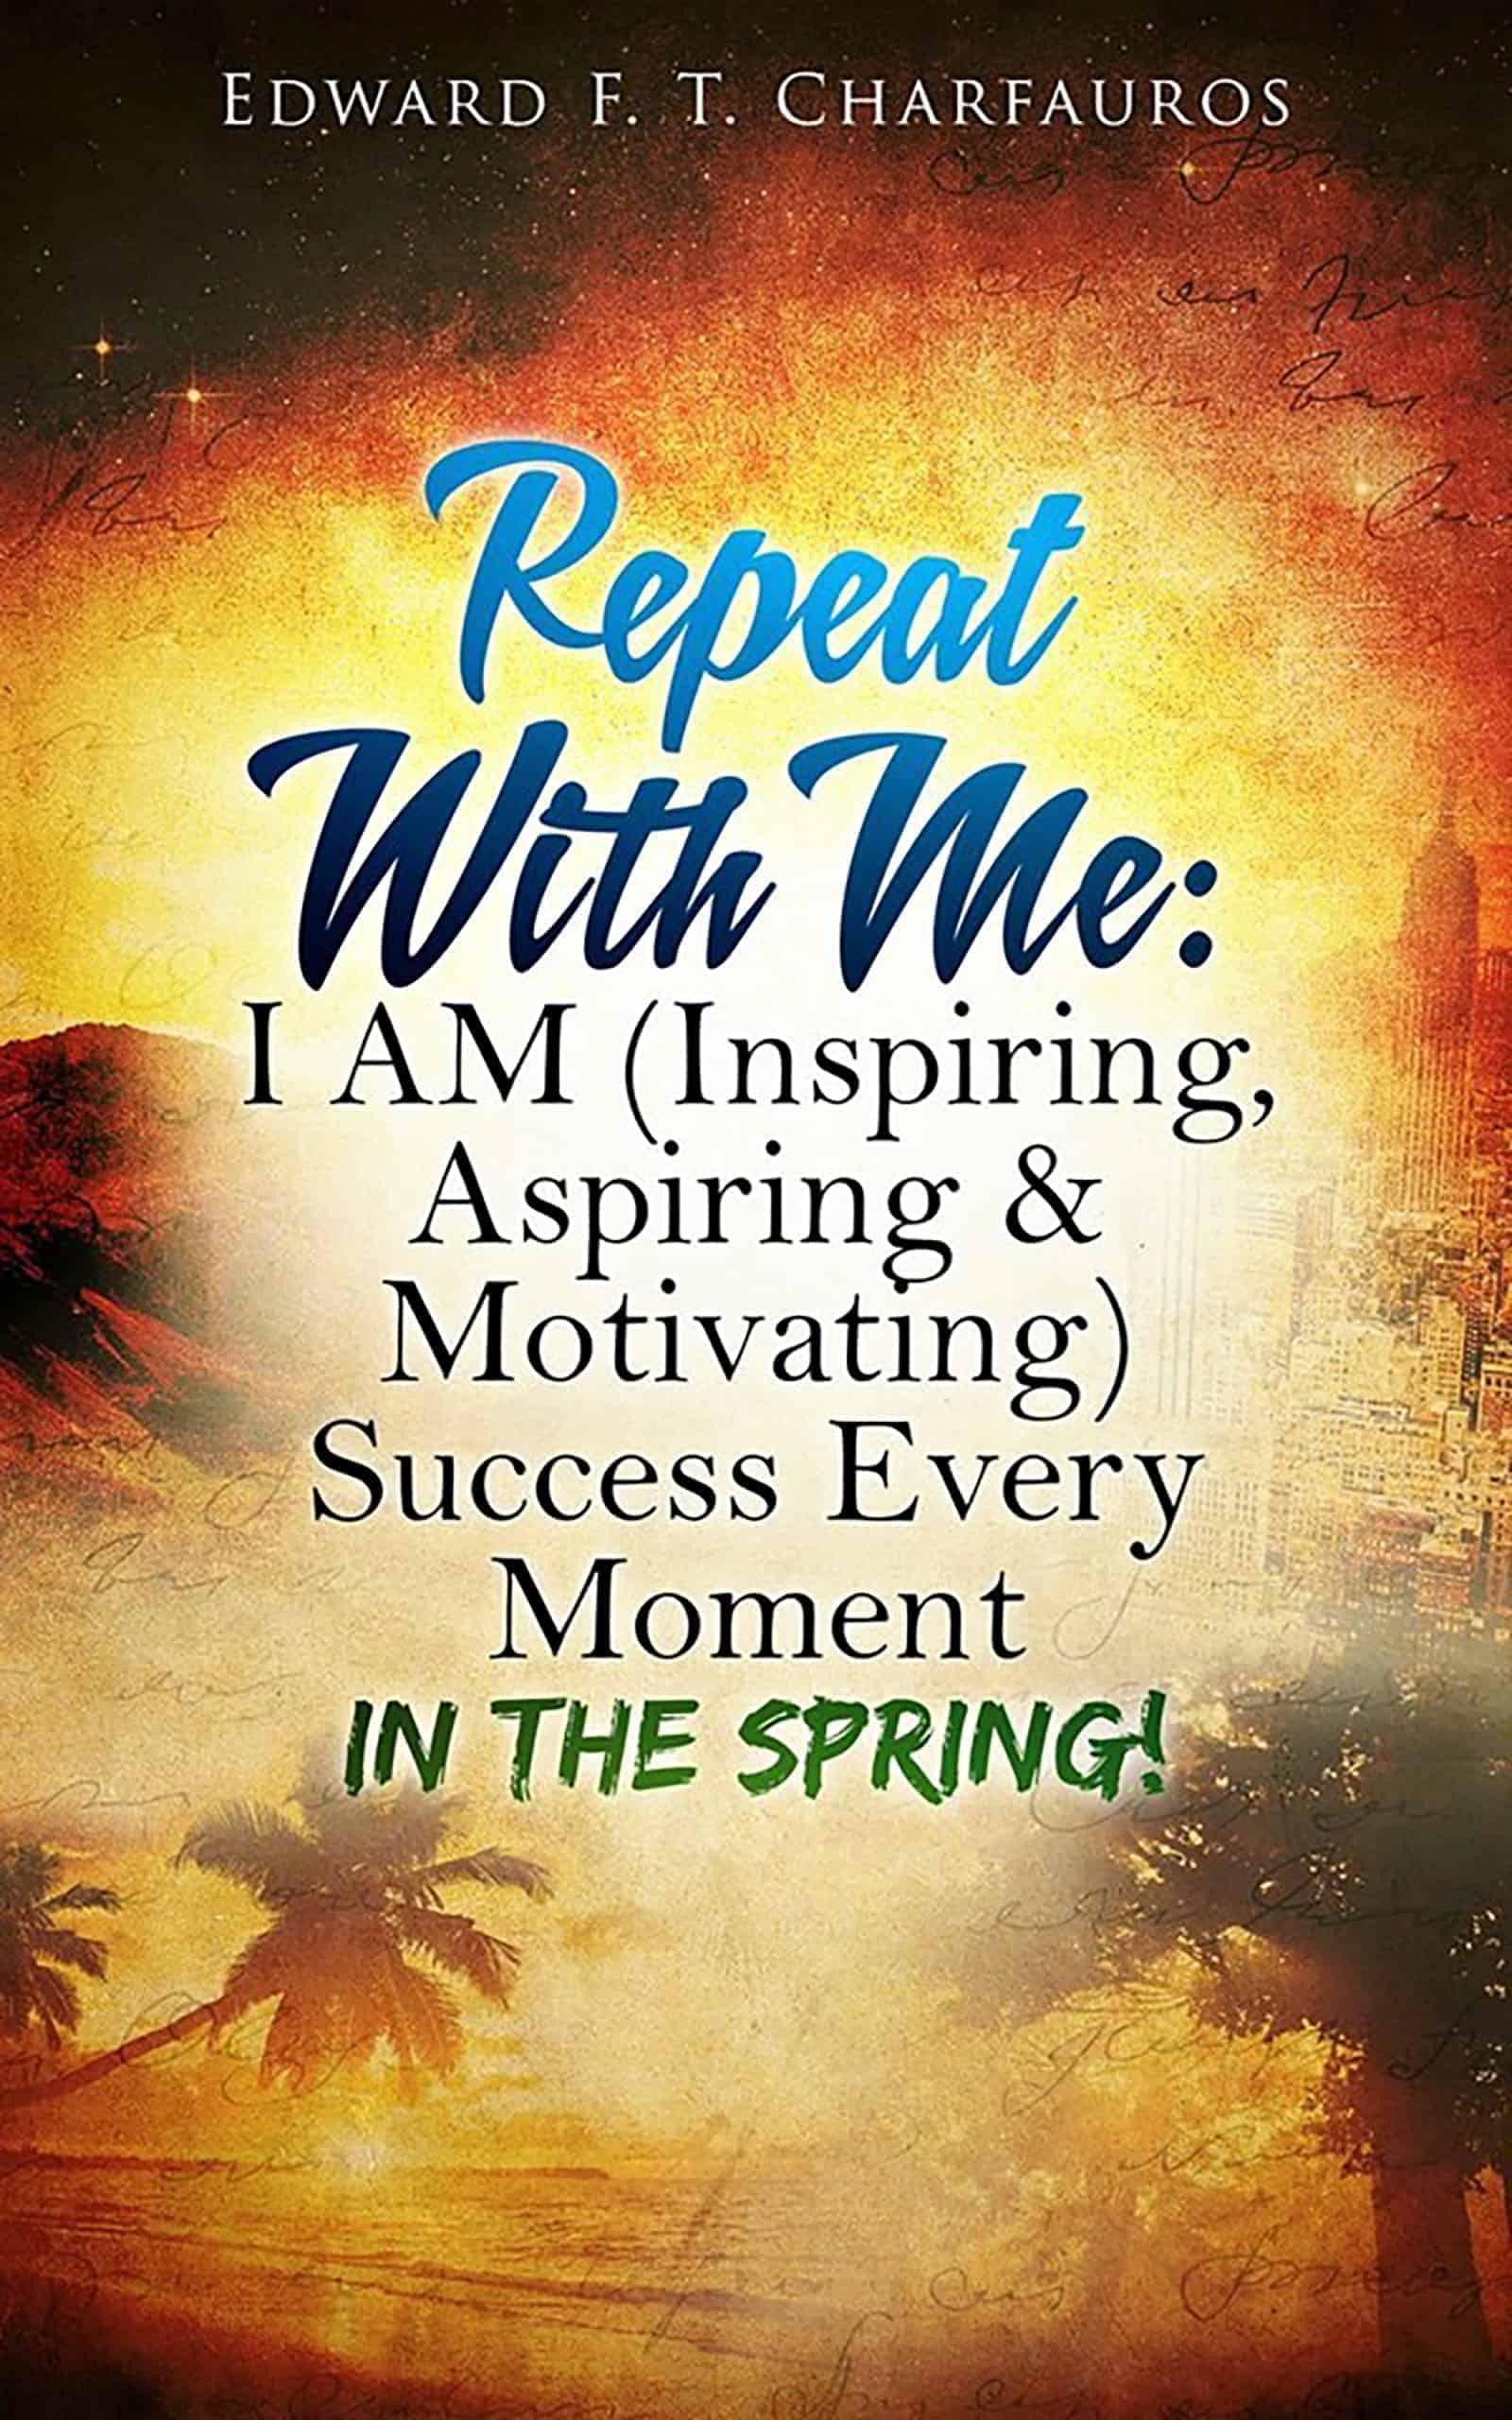 Repeat with Me: I Am (Inspiring, Aspiring & Motivating) Success Every Moment: In the Spring! By: Edward F. T. Charfauros